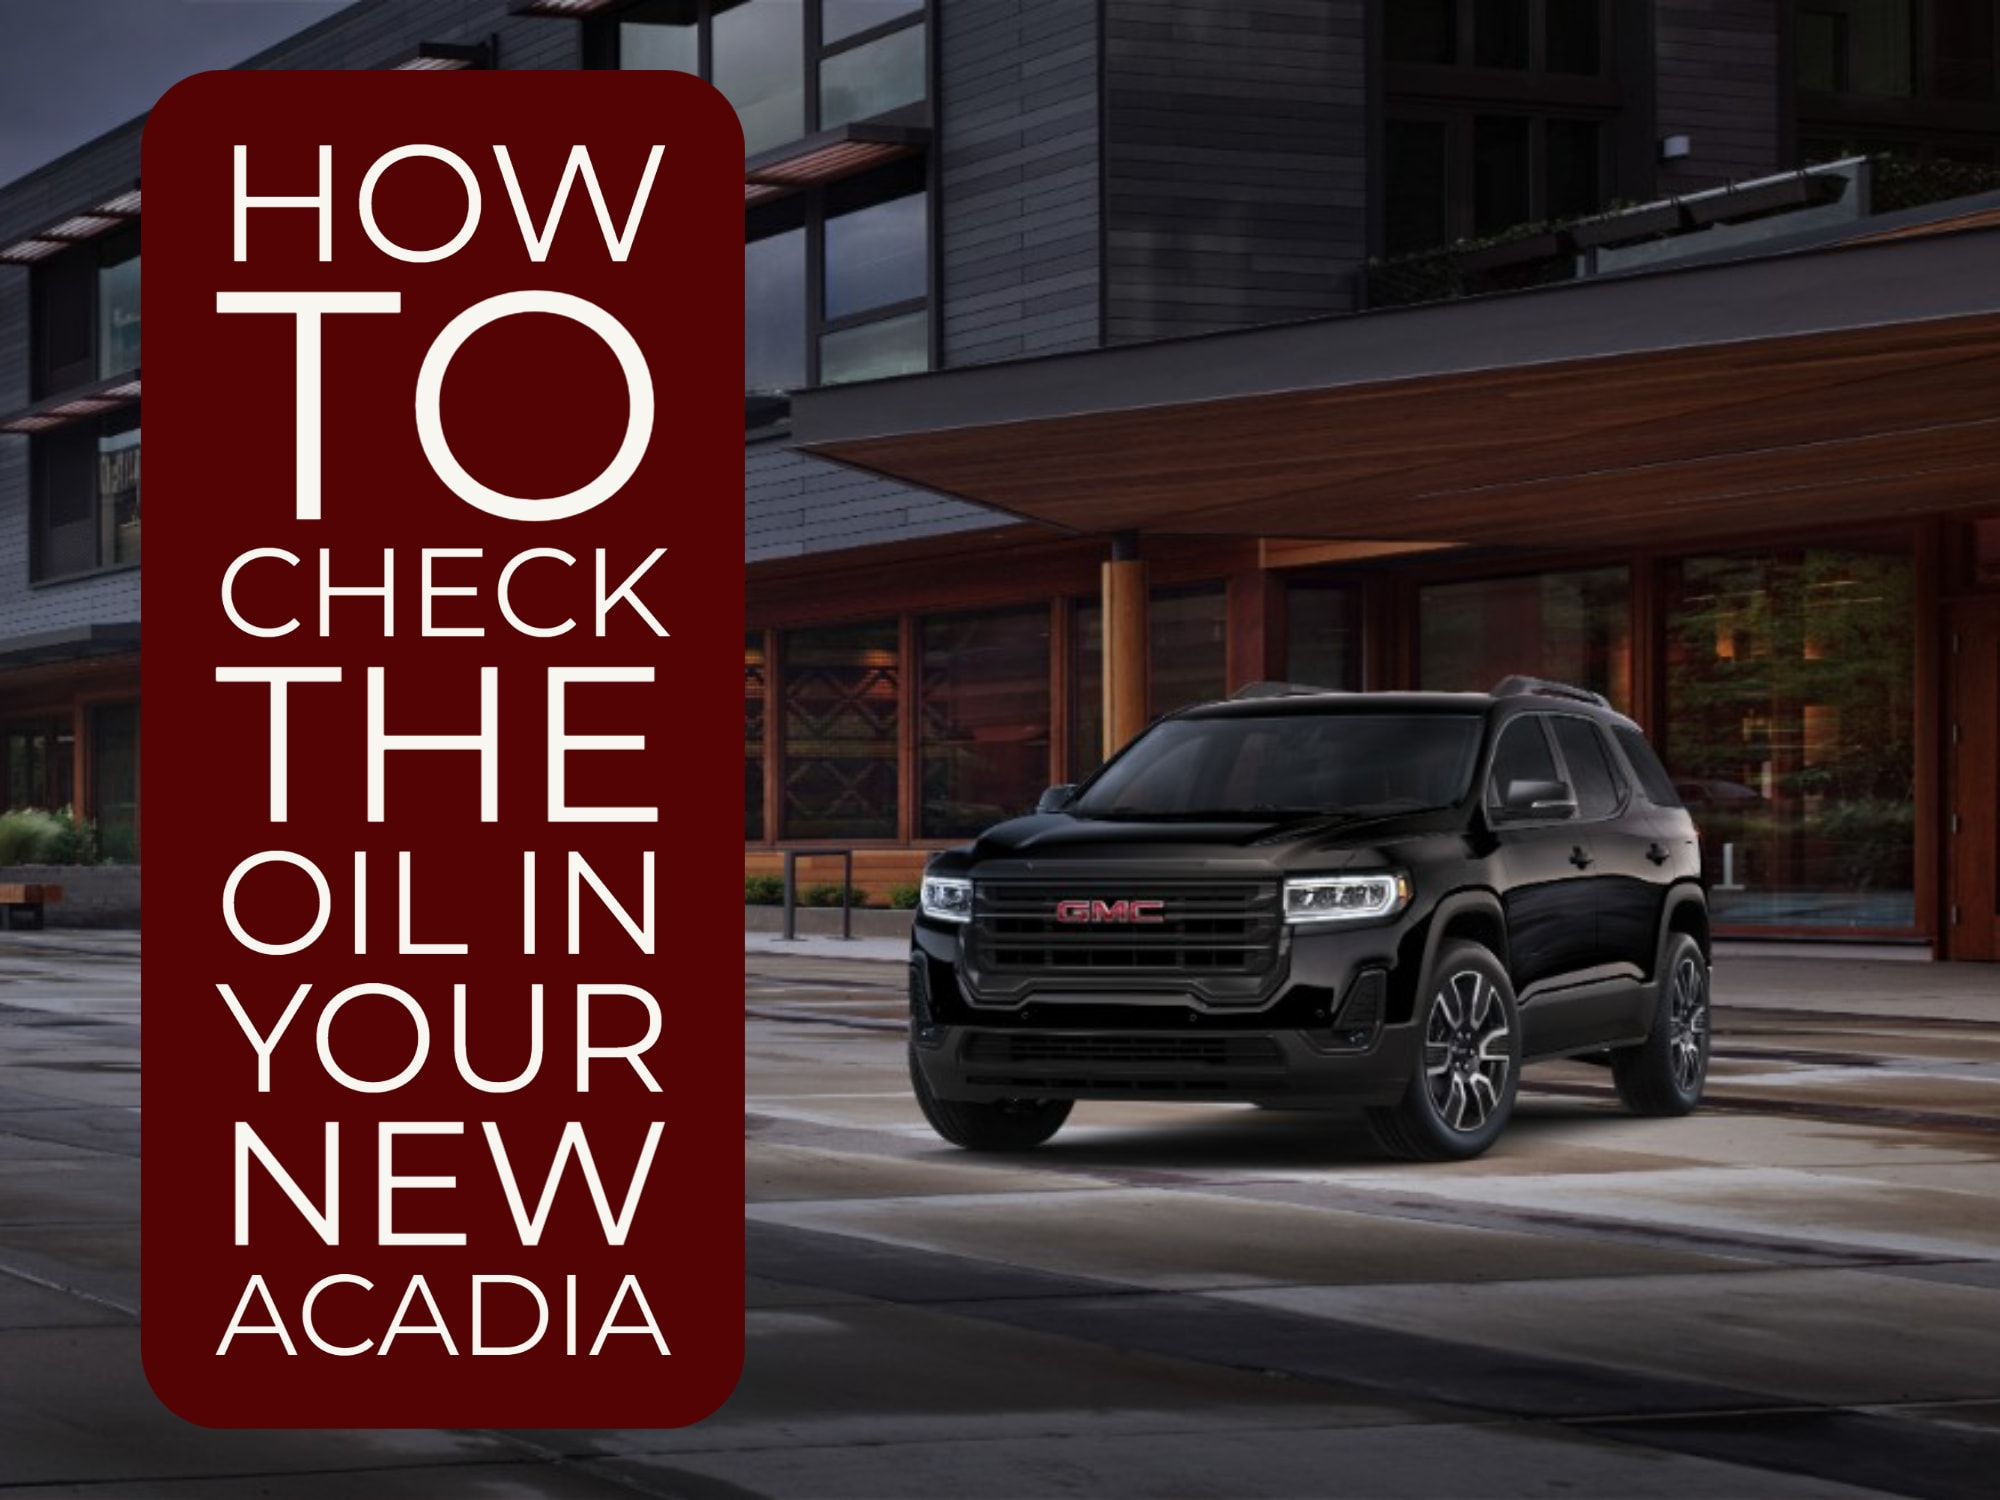 Front 3/4 View of Black Acadia SUV parked